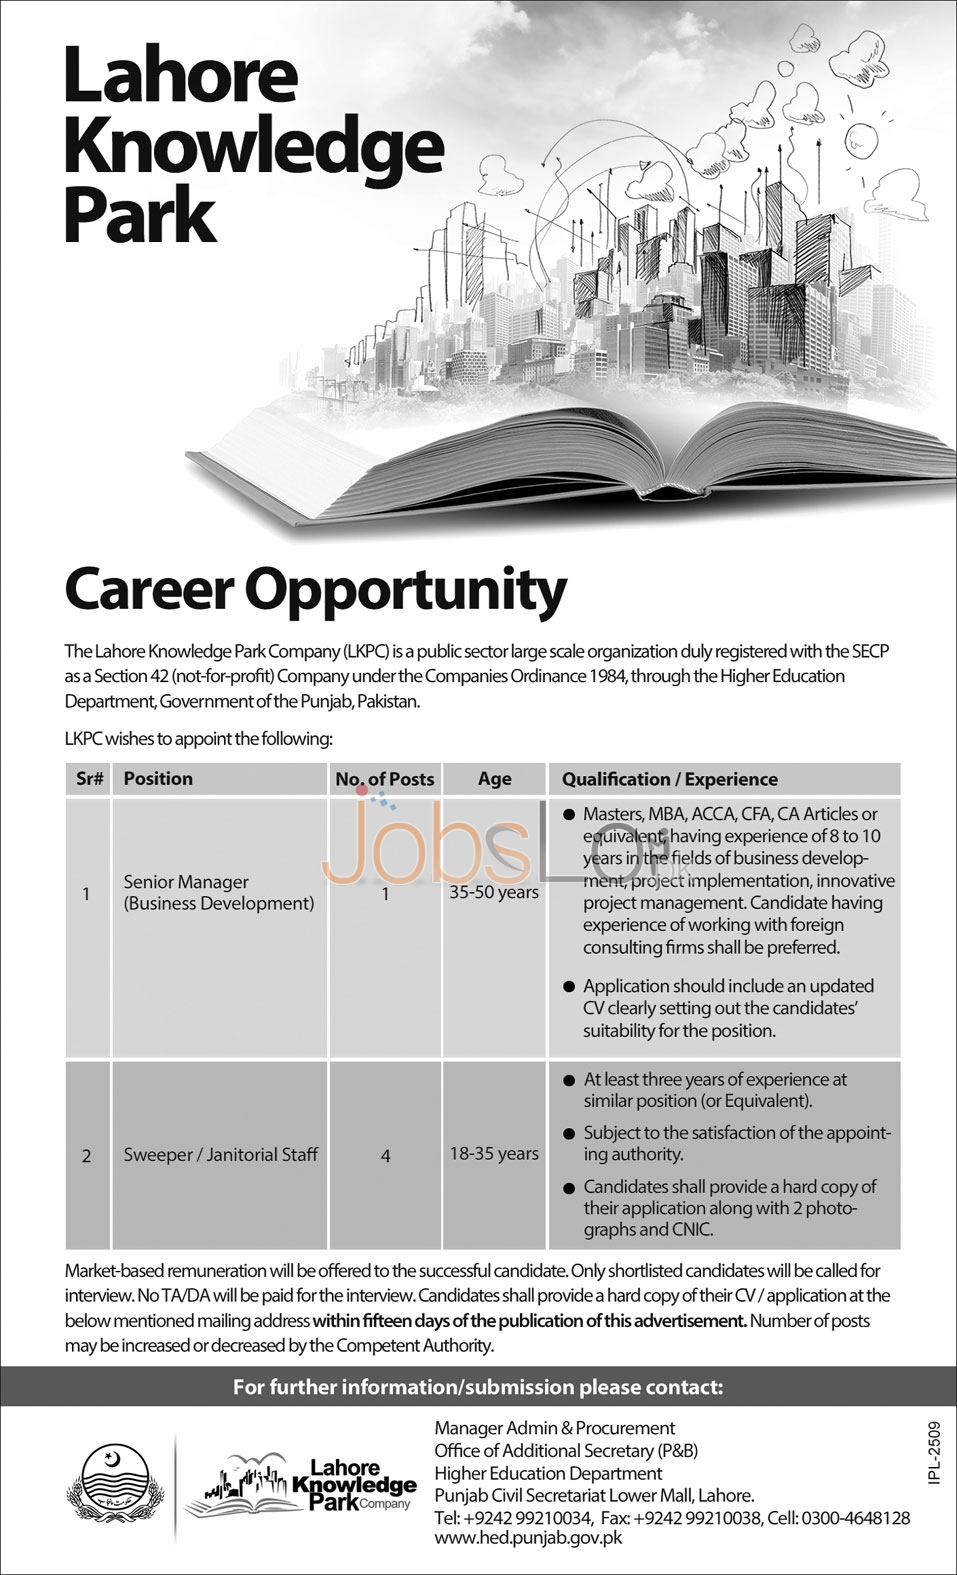 Recruitment Offers in Lahore Knowledge Park Company 2016 Latest Advertisement